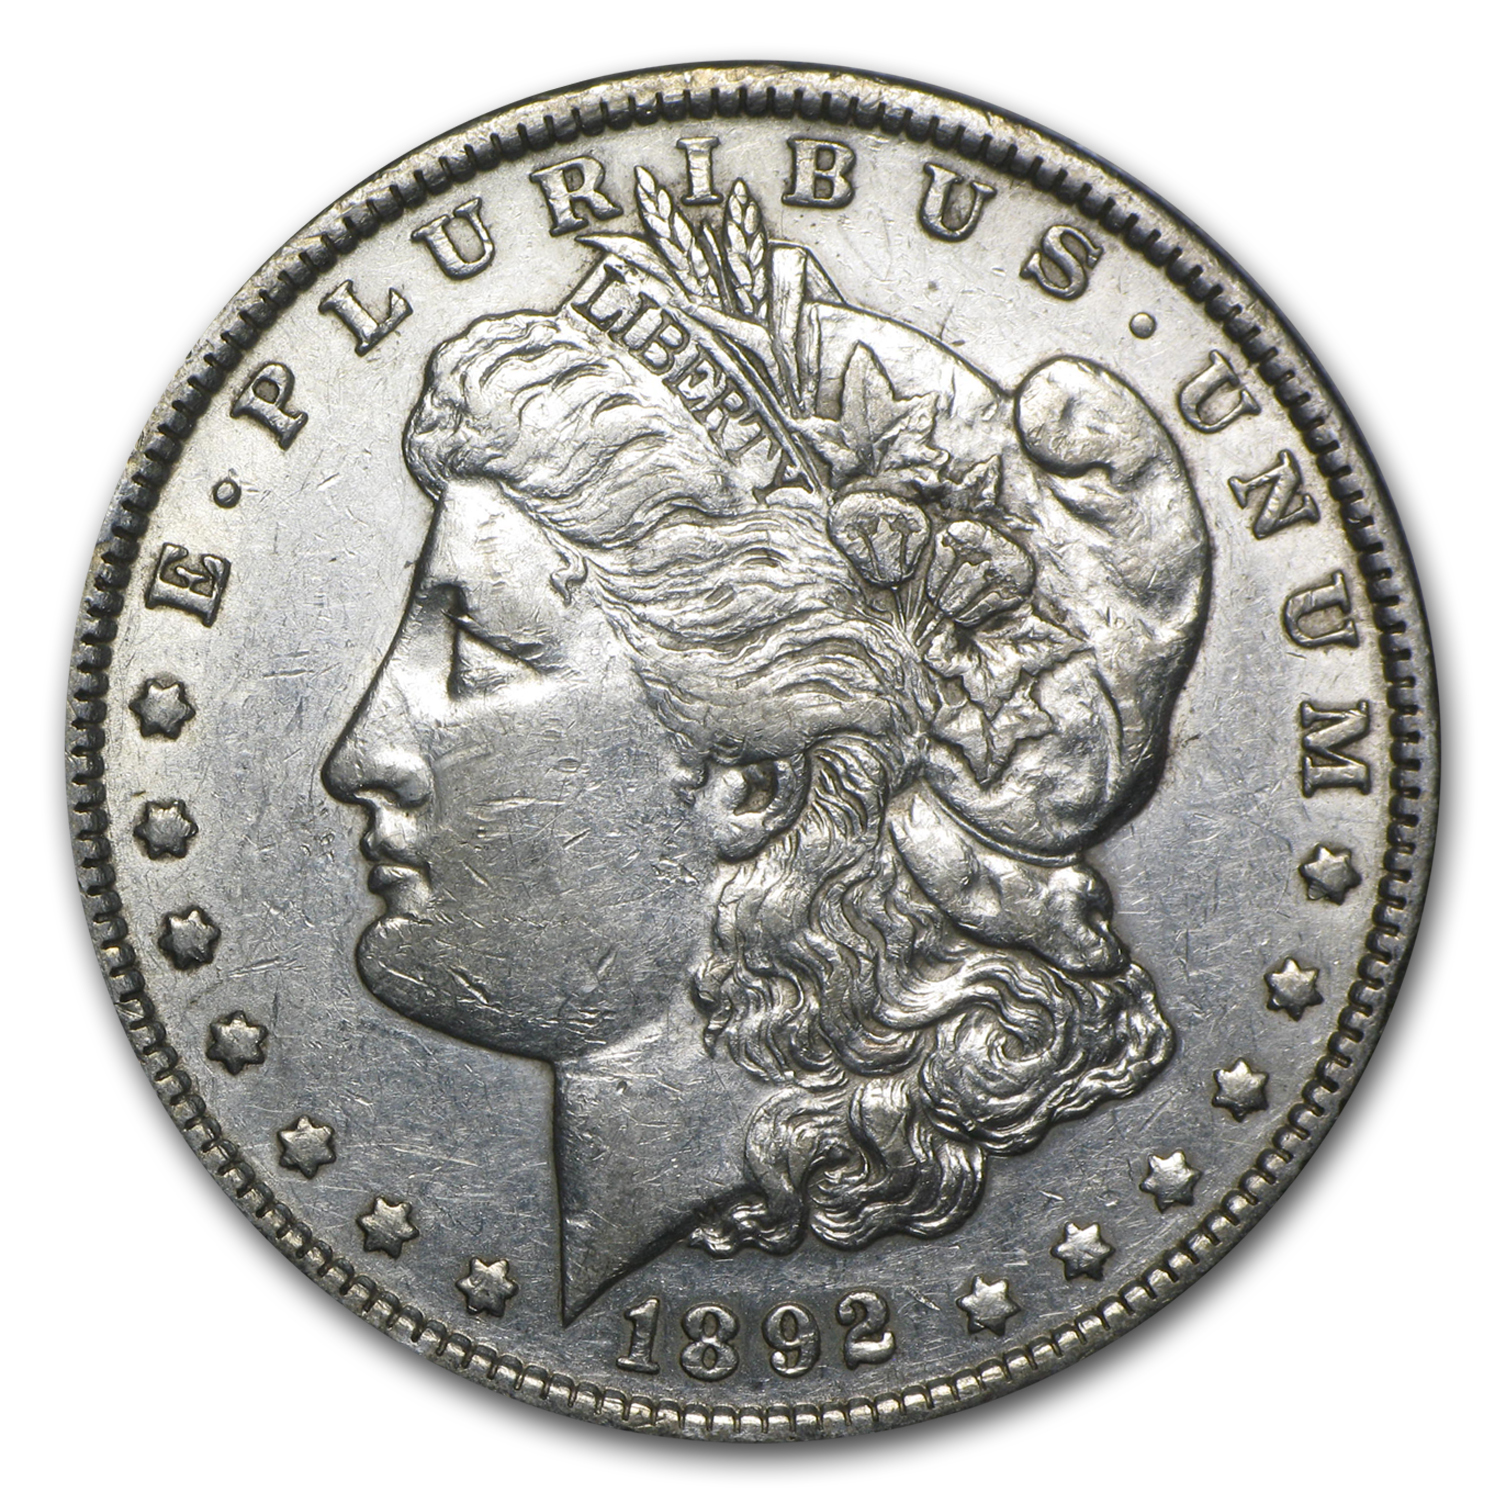 1892 Morgan Dollar - Almost Uncirculated-50